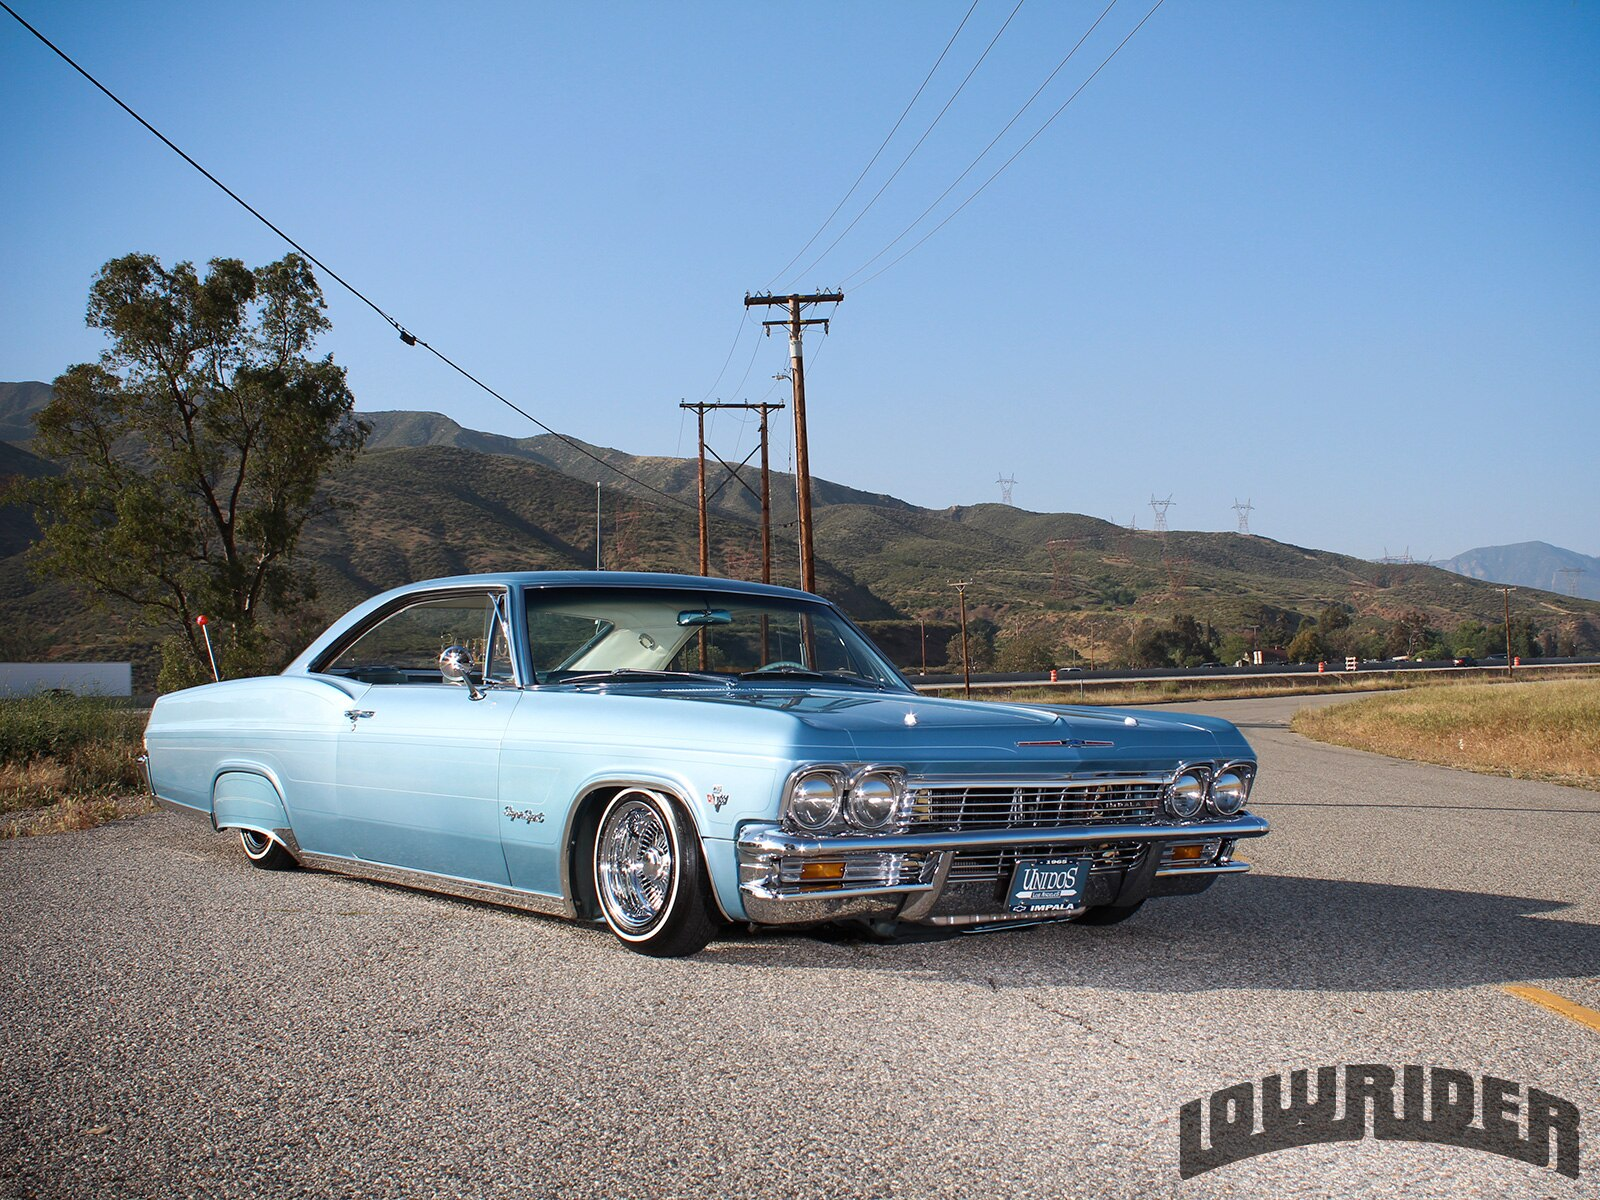 1965-chevrolet-impala-front-right-side-view2